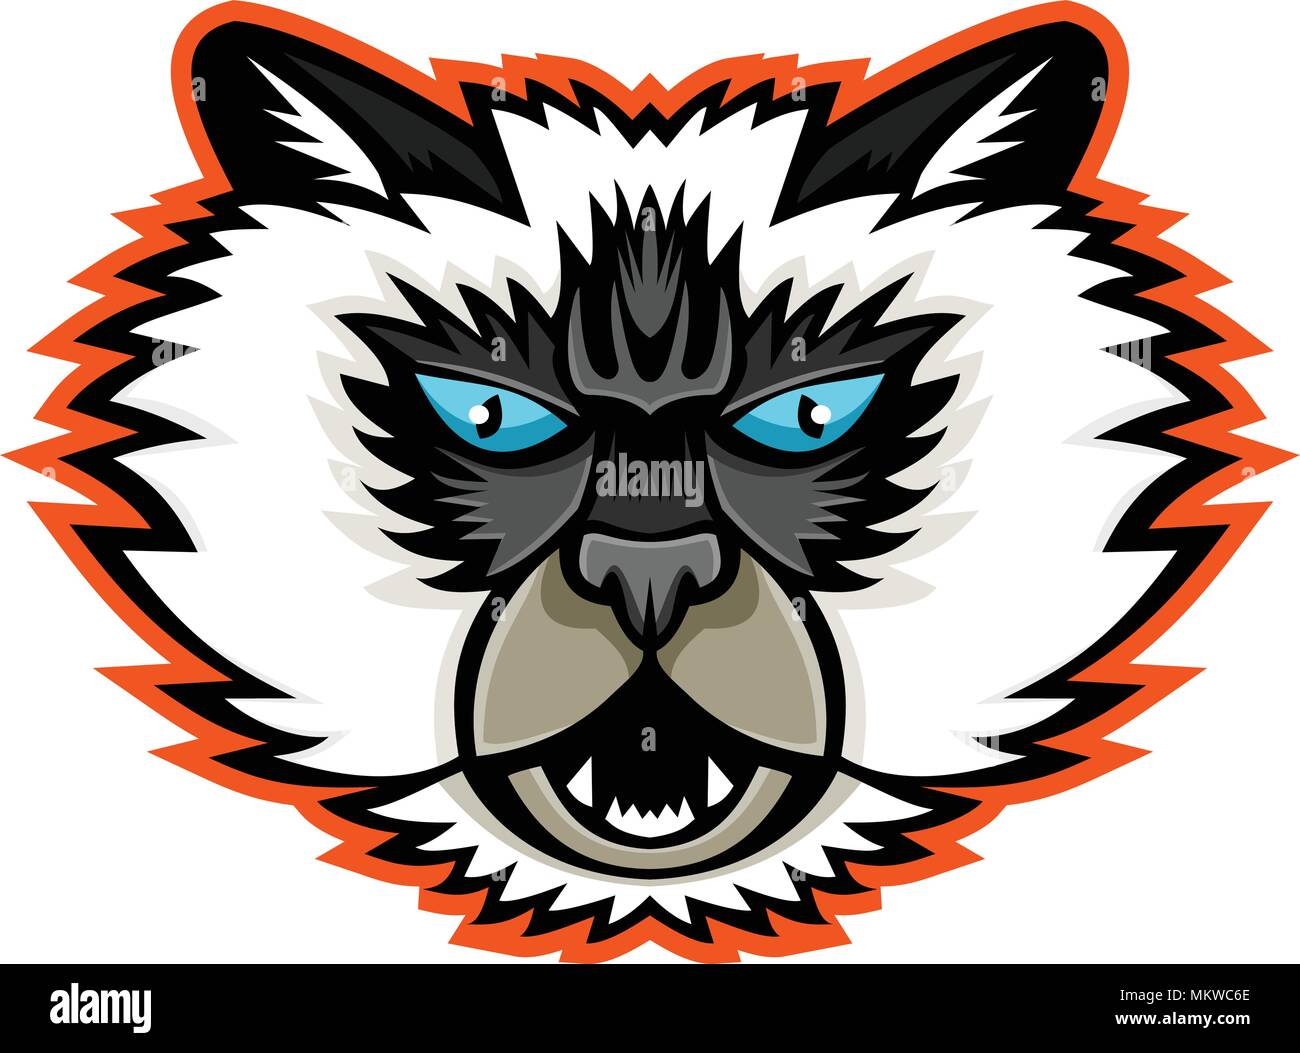 Sports mascot icon illustration of head of a Himalayan cat, a breed of long-haired cat viewed from front on isolated background in retro style. - Stock Vector